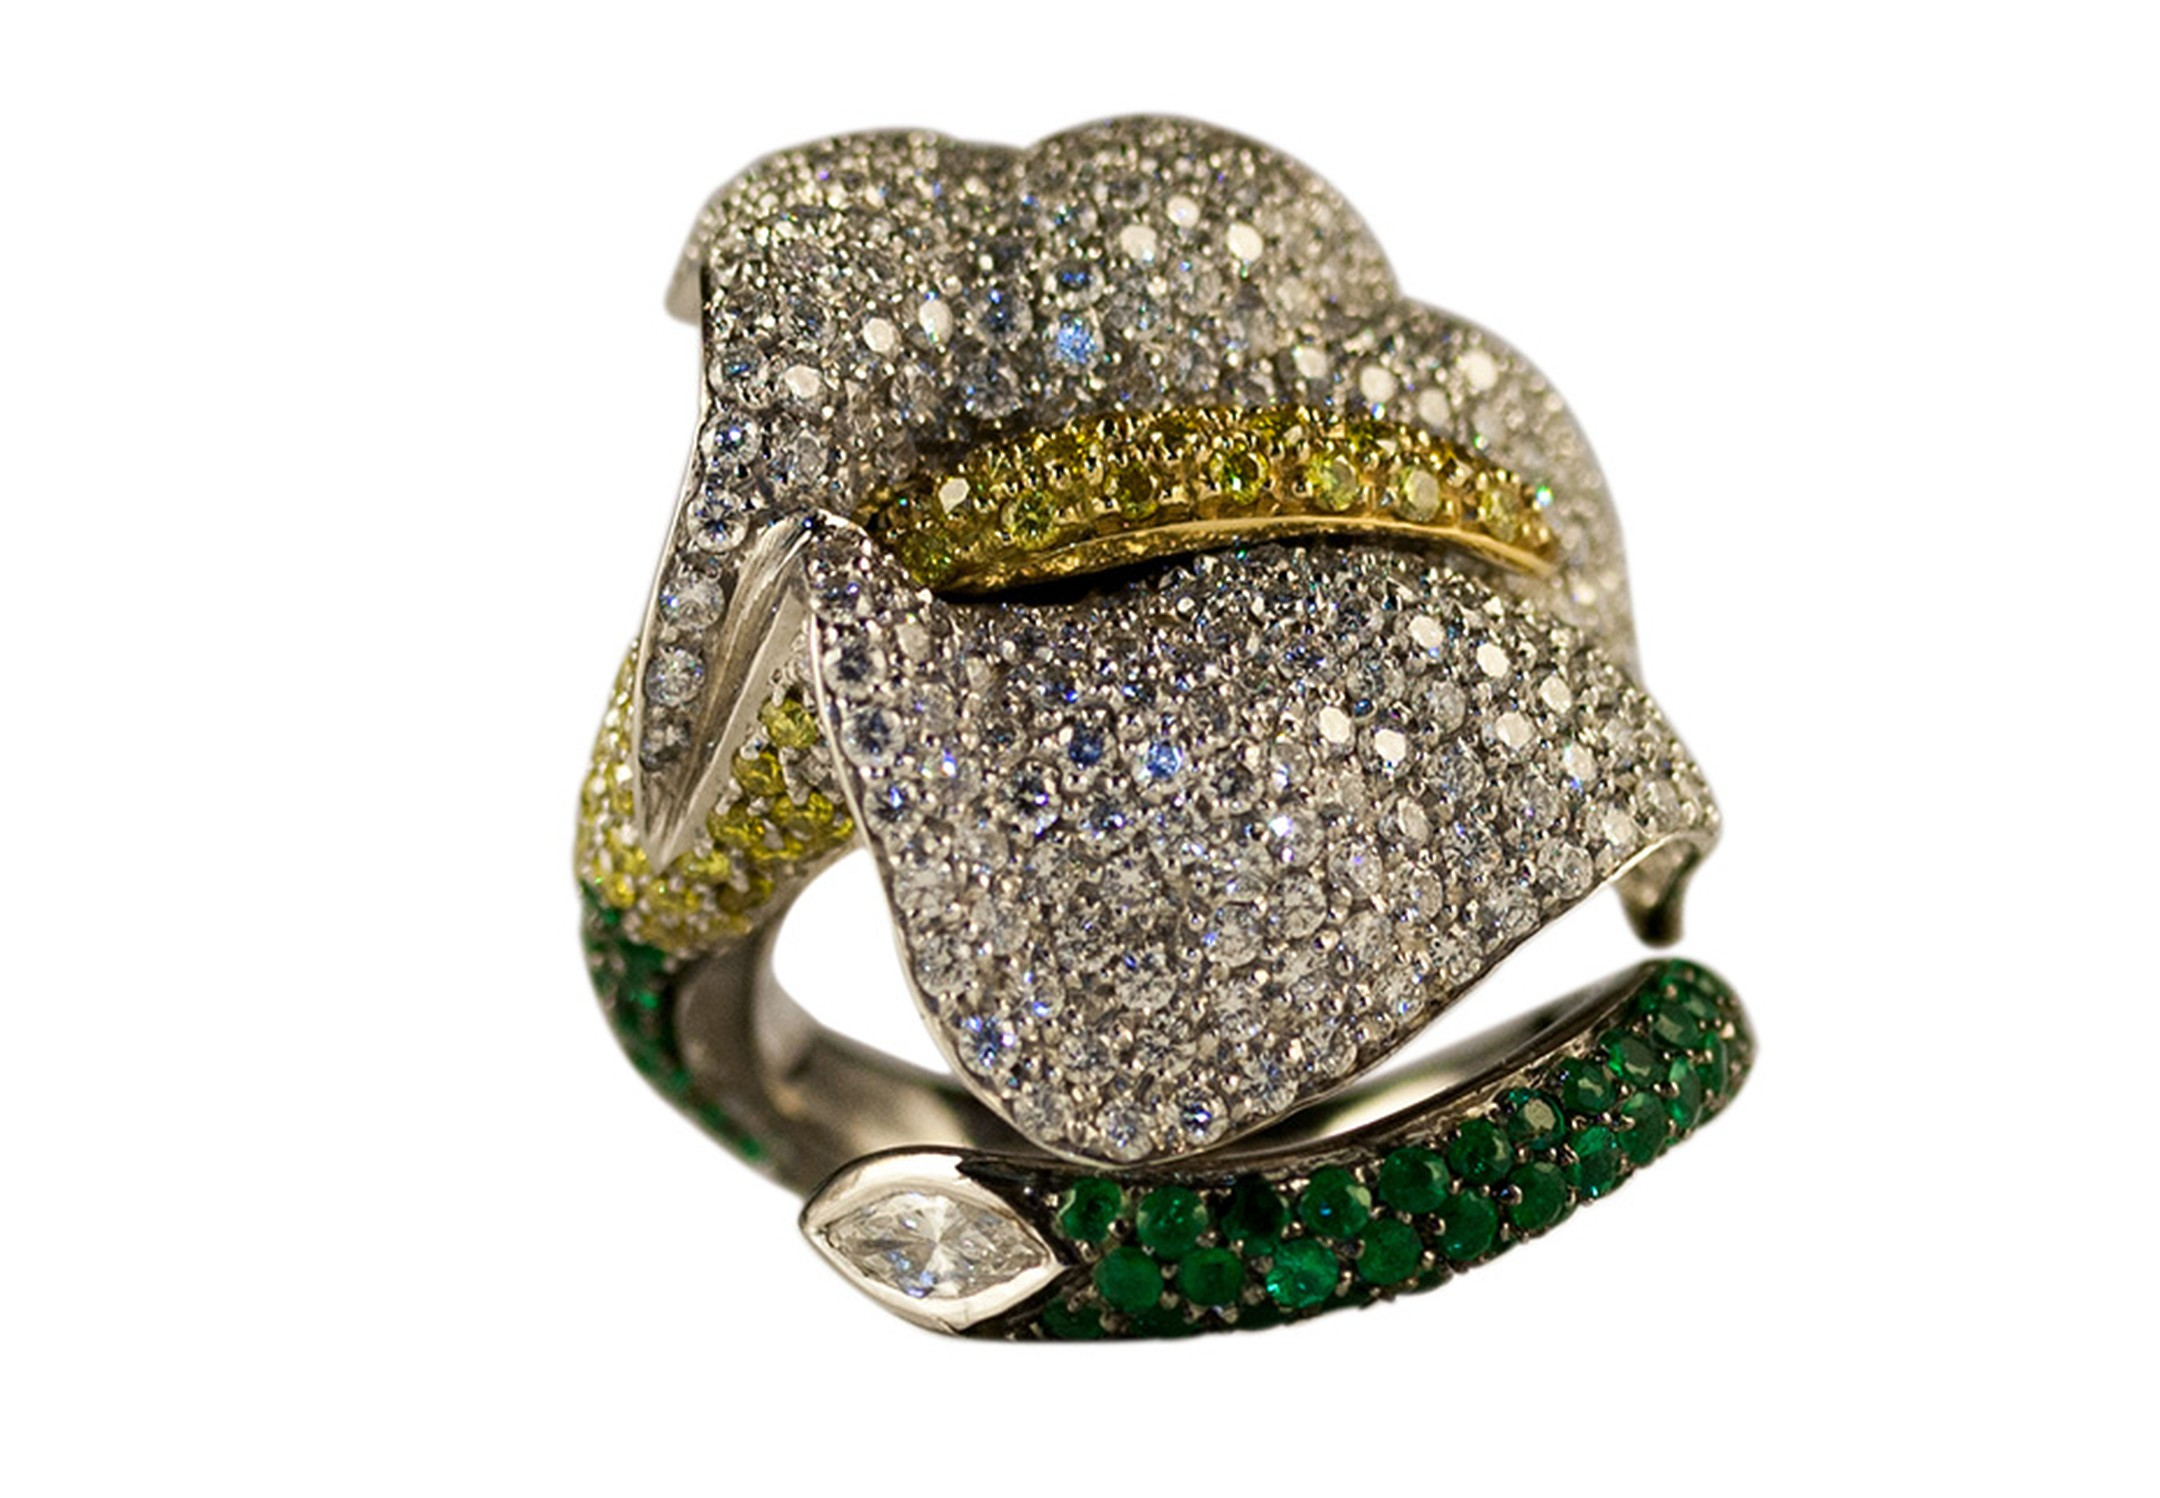 Emily H London's Calla Lily ring in white gold, pavé set with emeralds and white and yellow diamonds